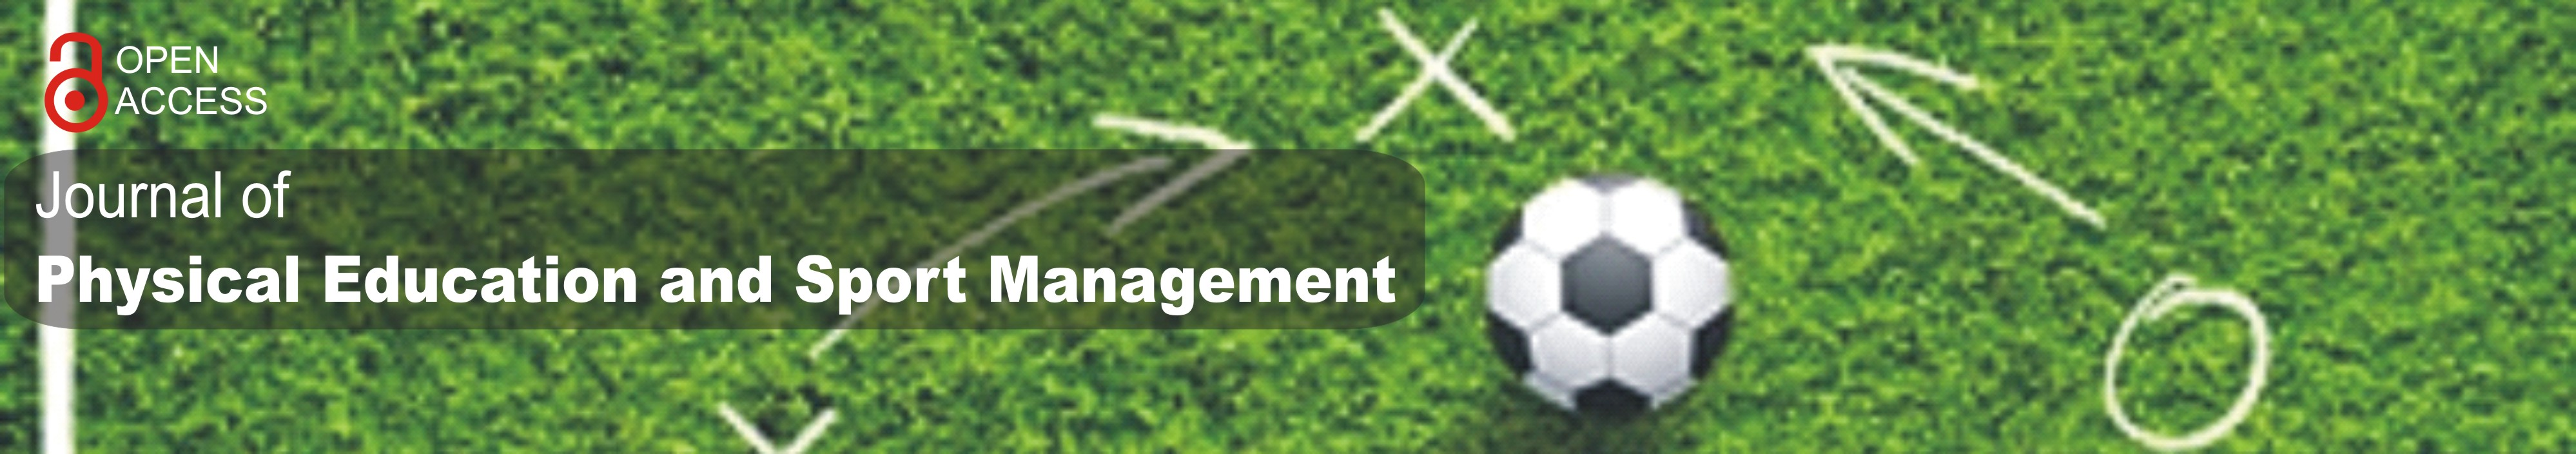 Journal of Physical Education and Sport Management